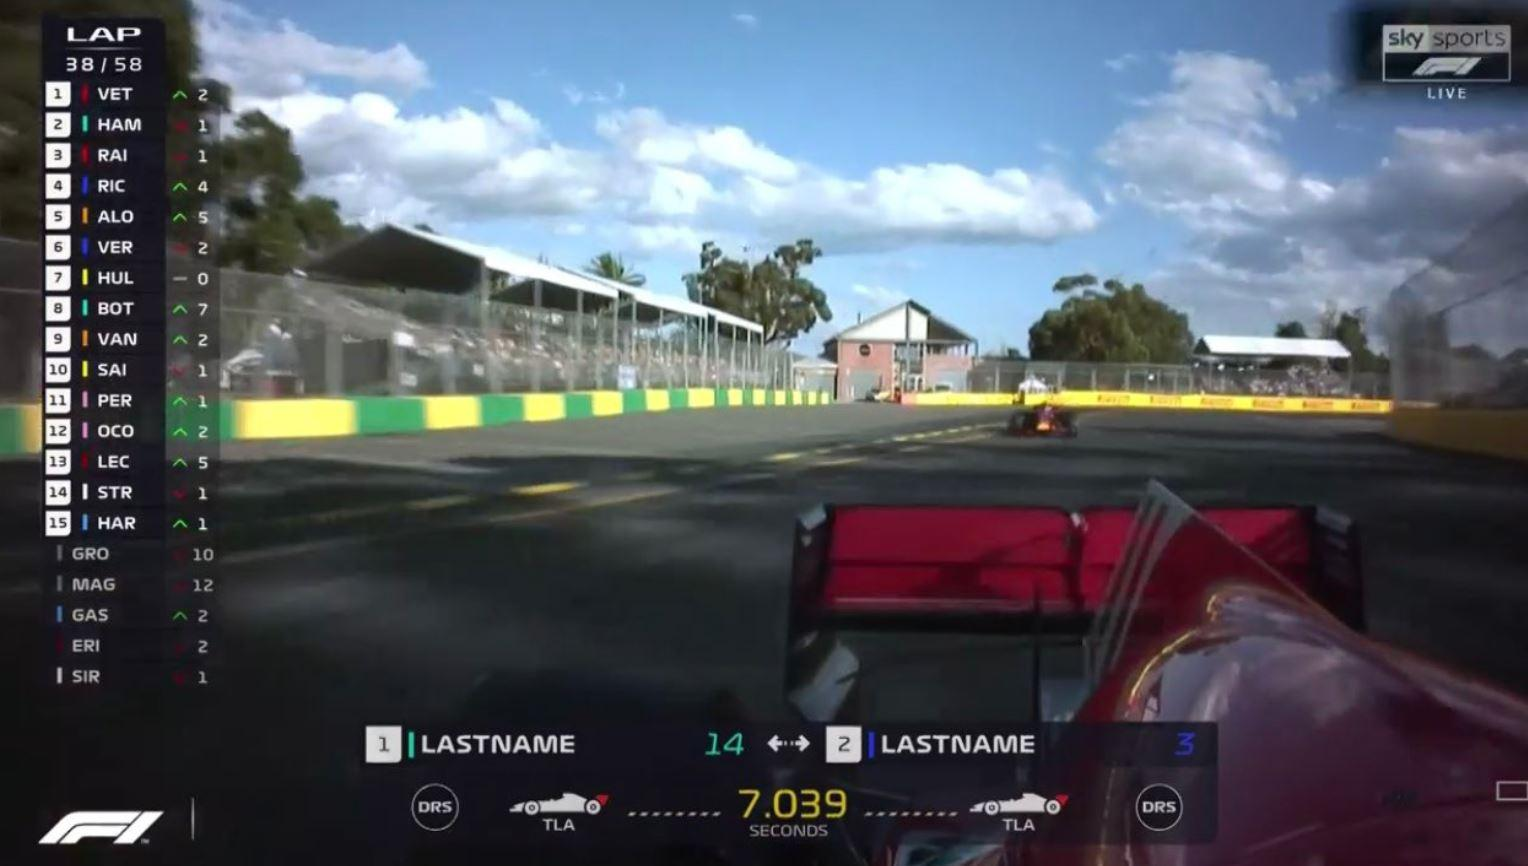 'Lastname' took on 'Lastname' at the Australian GP... at least, so said the graphics